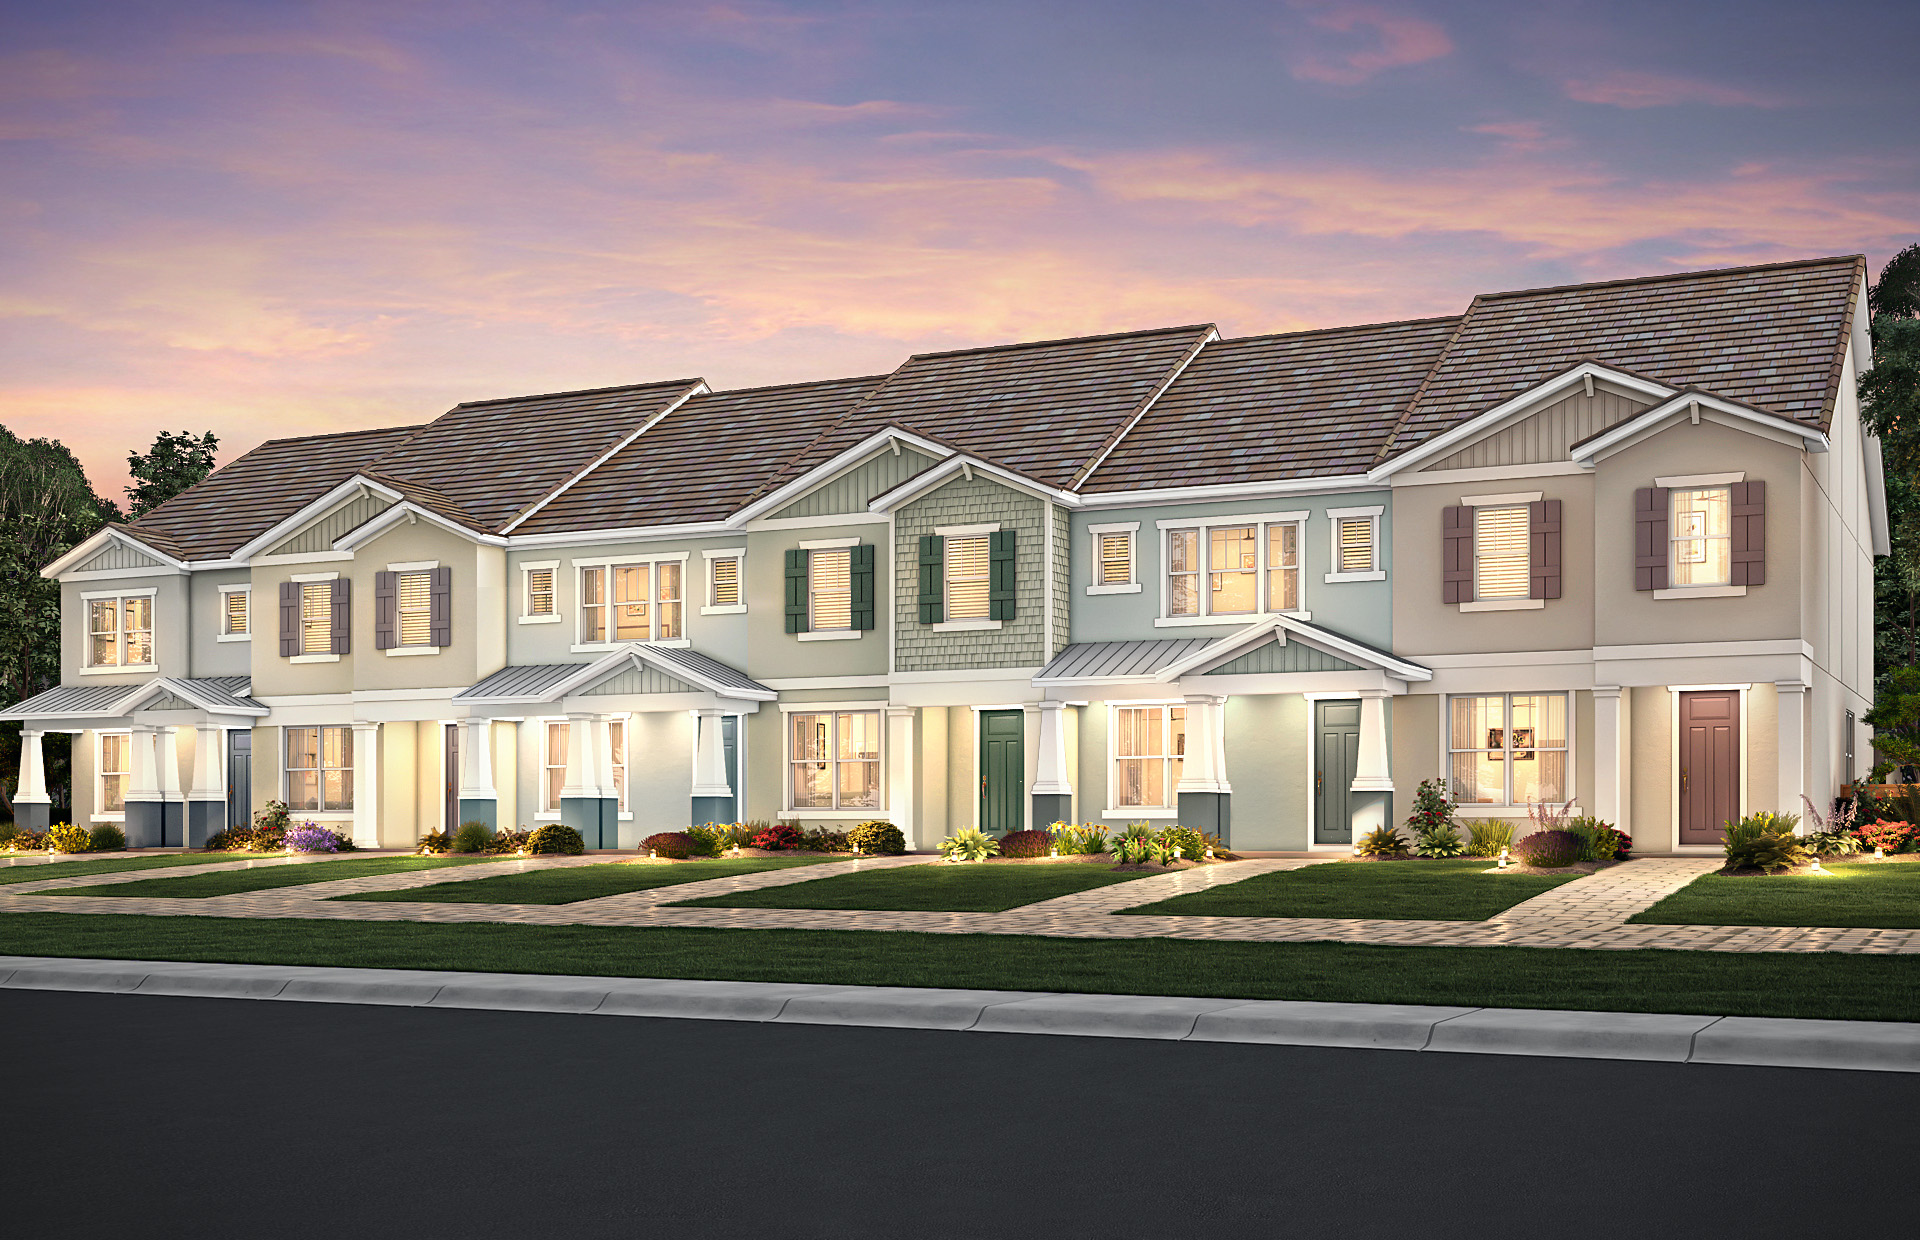 Foxtail Ext Townhome - Homesite 159